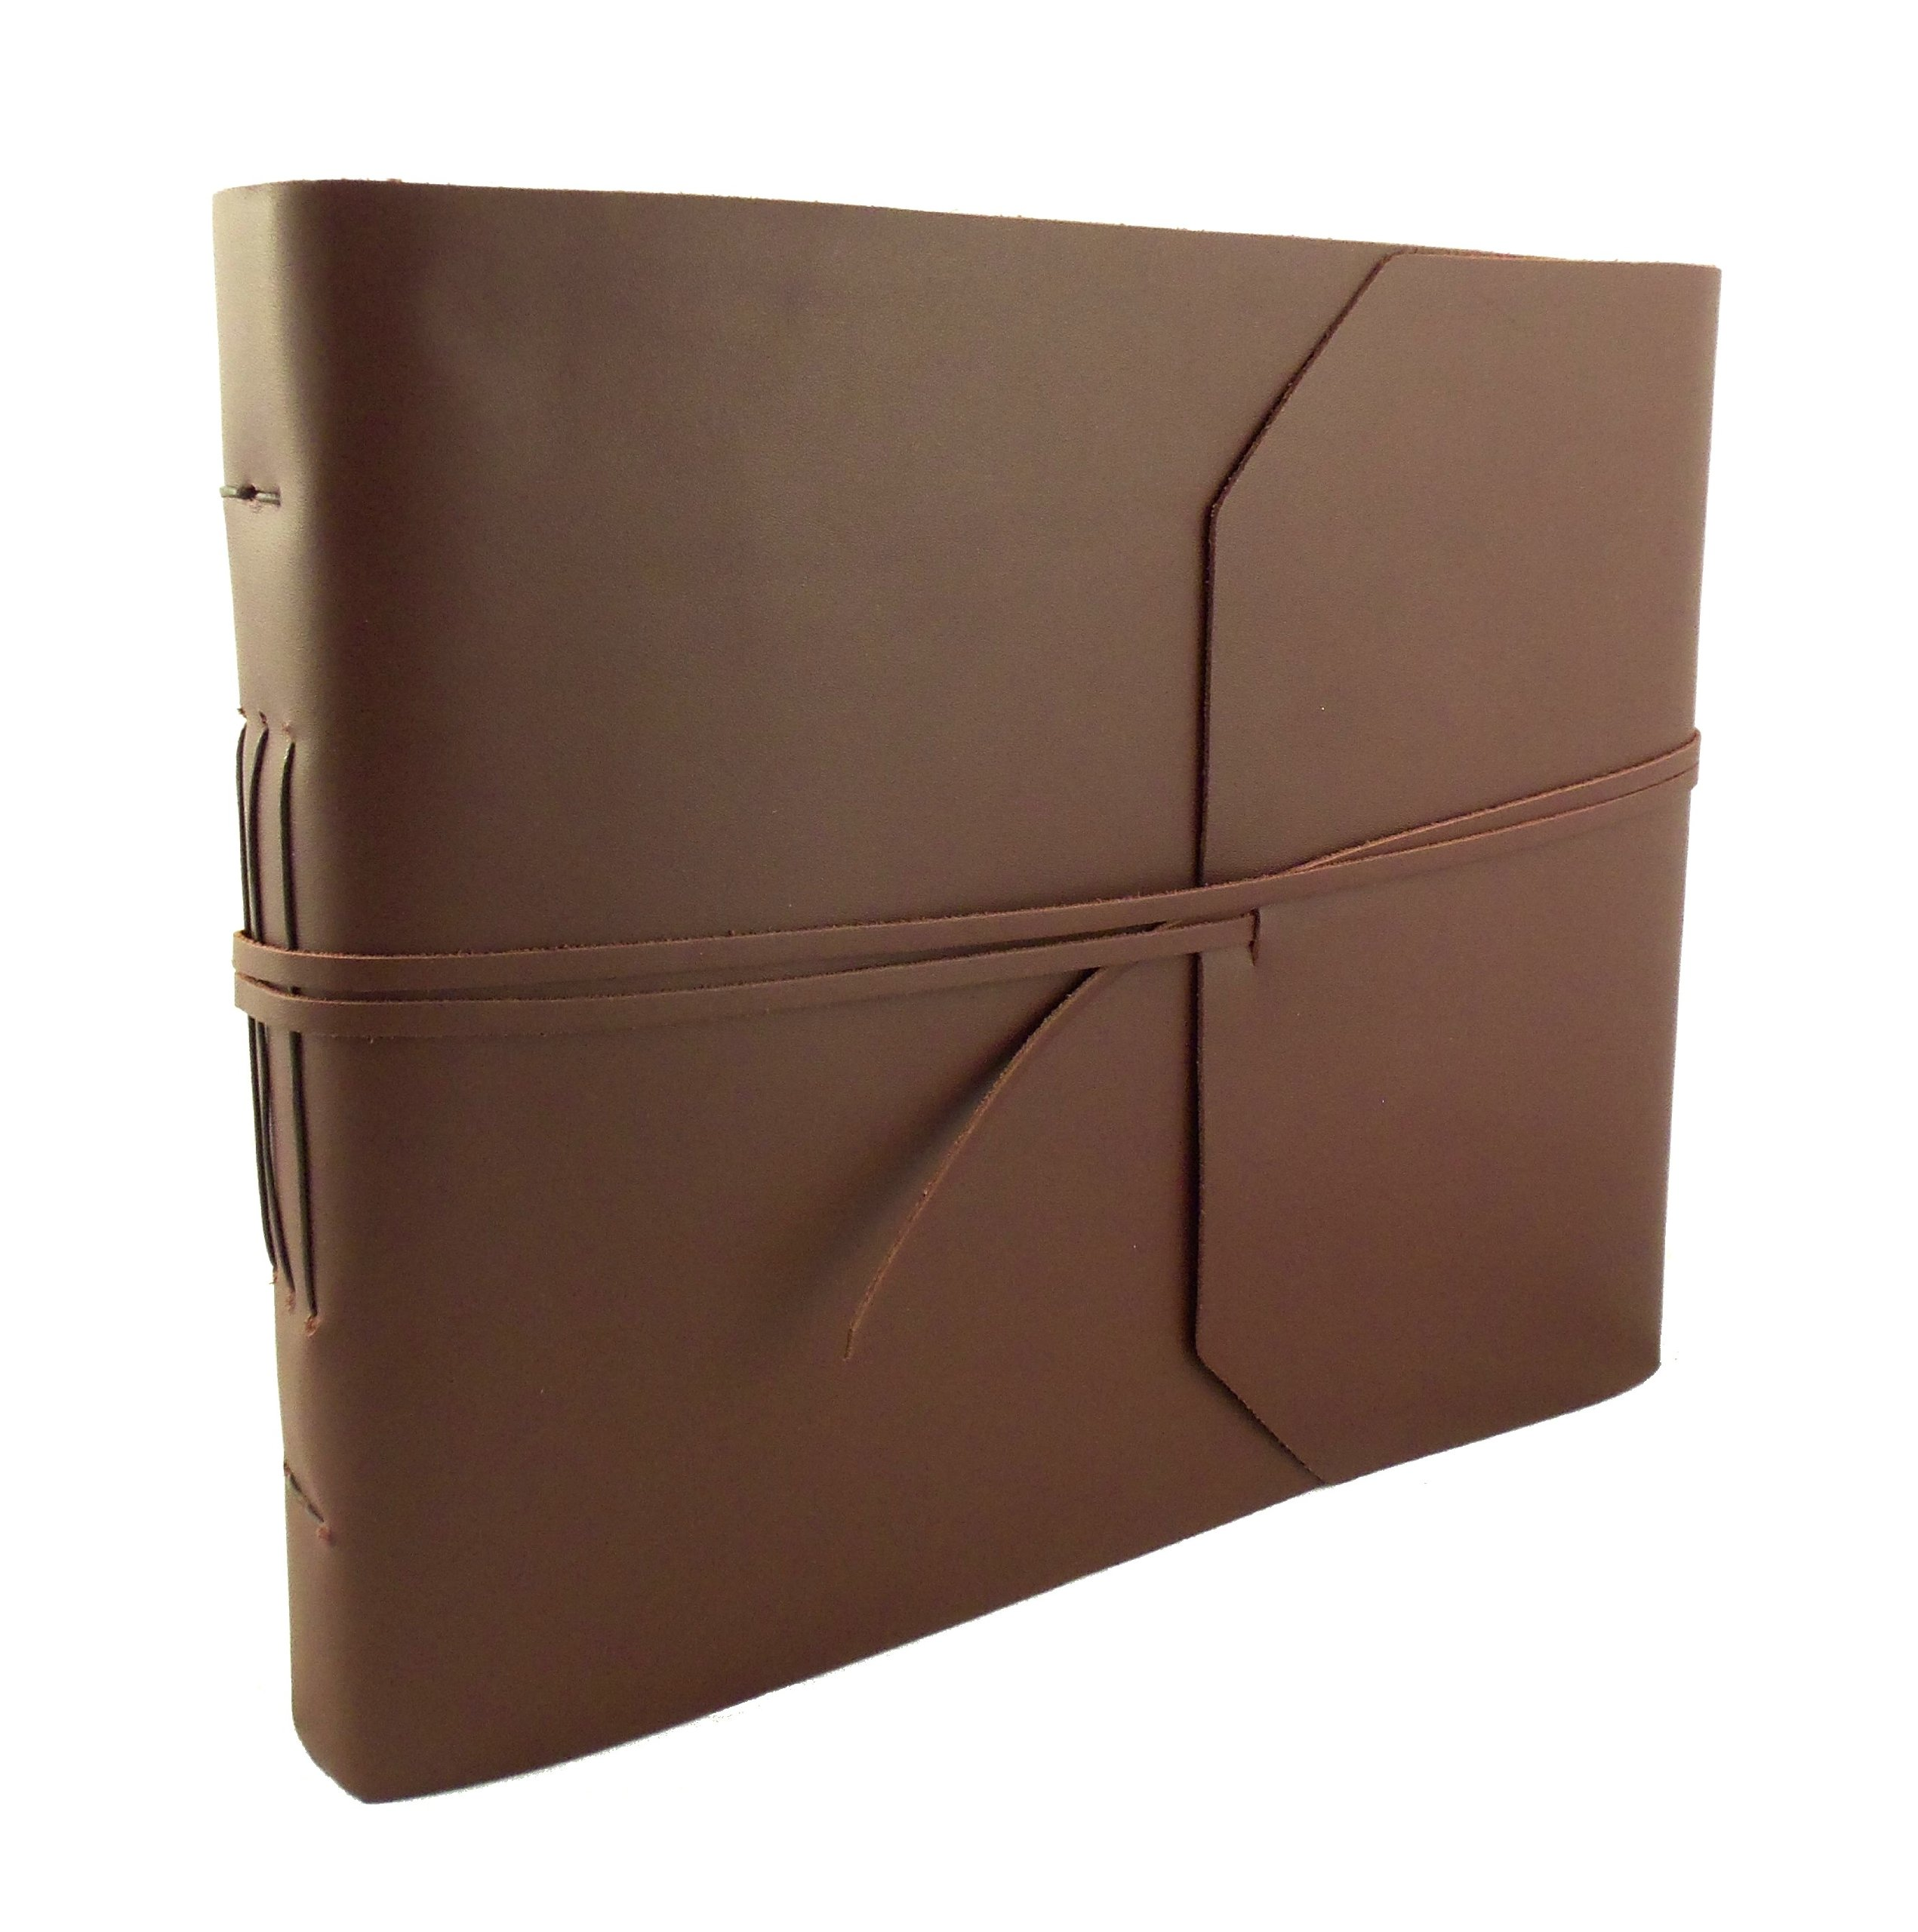 Large Genuine Leather Photo Album with Gift Box - Scrapbook Style Pages - Holds 400 4x6'' or 200 5x7'' Photos by Rustic Ridge Leather